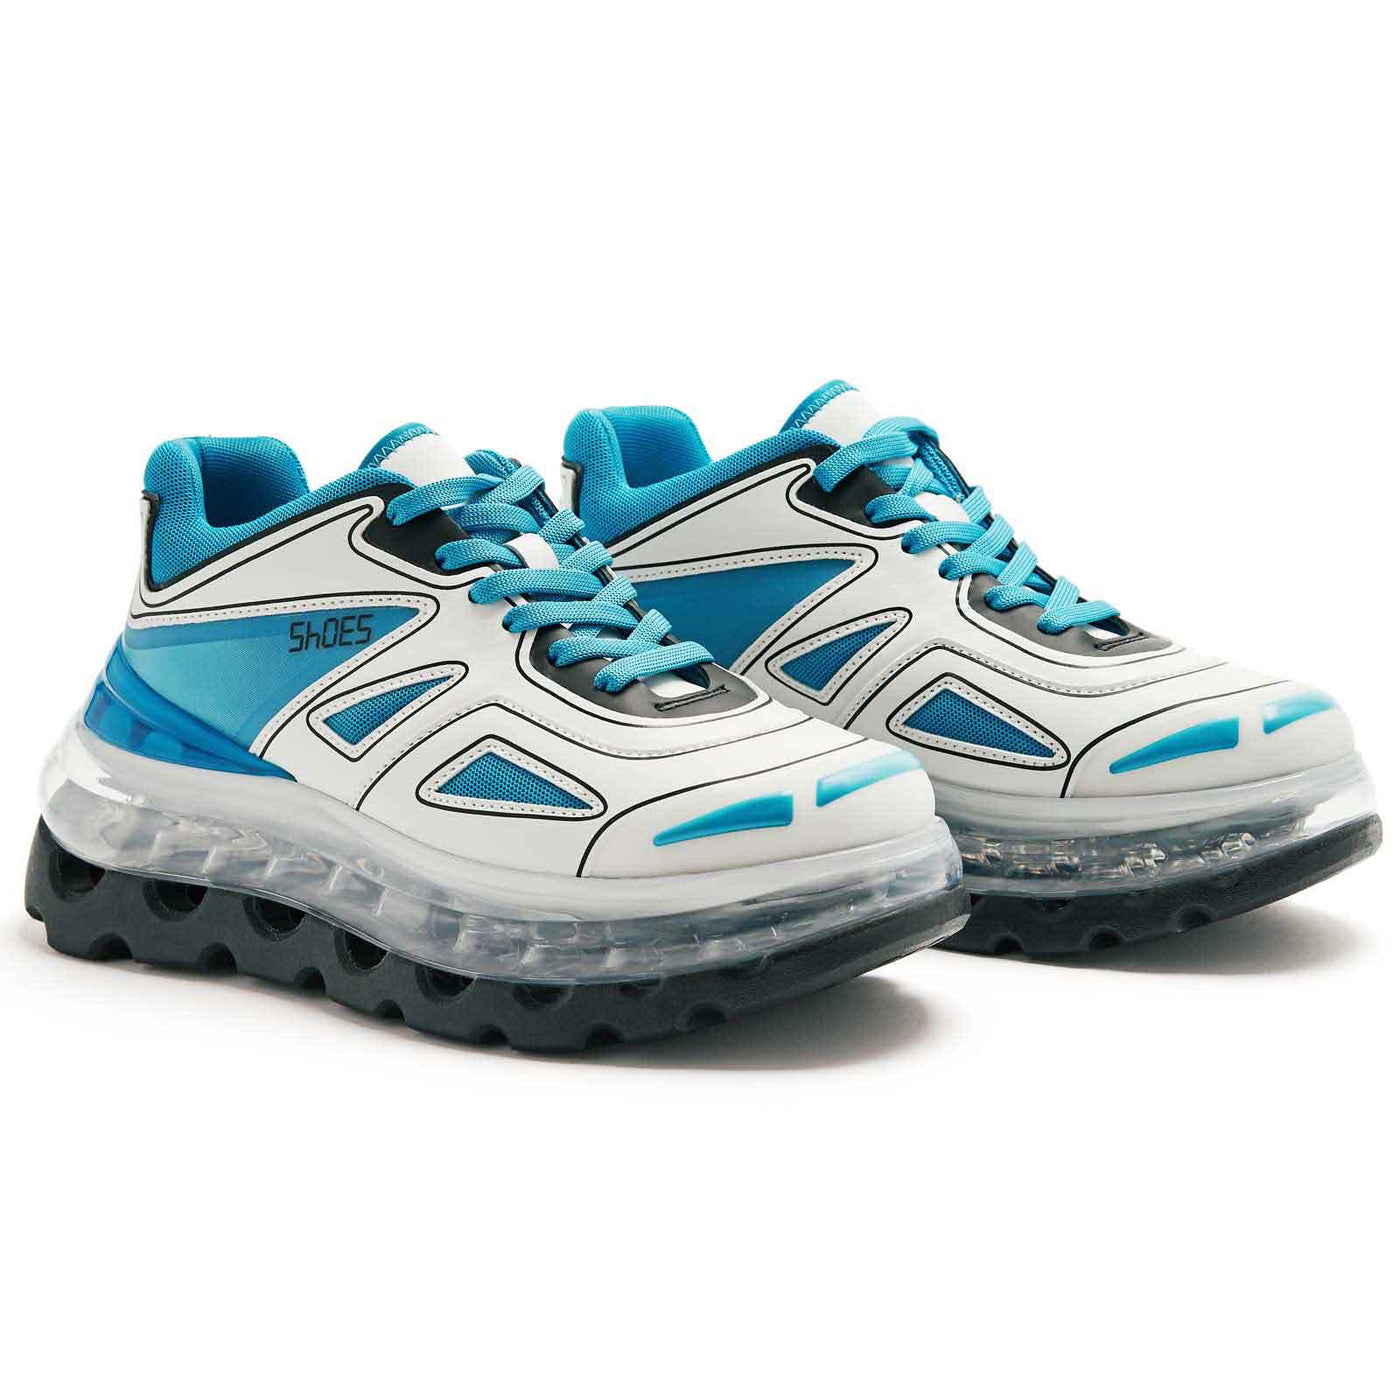 SHOES 53045 - Bump'air Ice